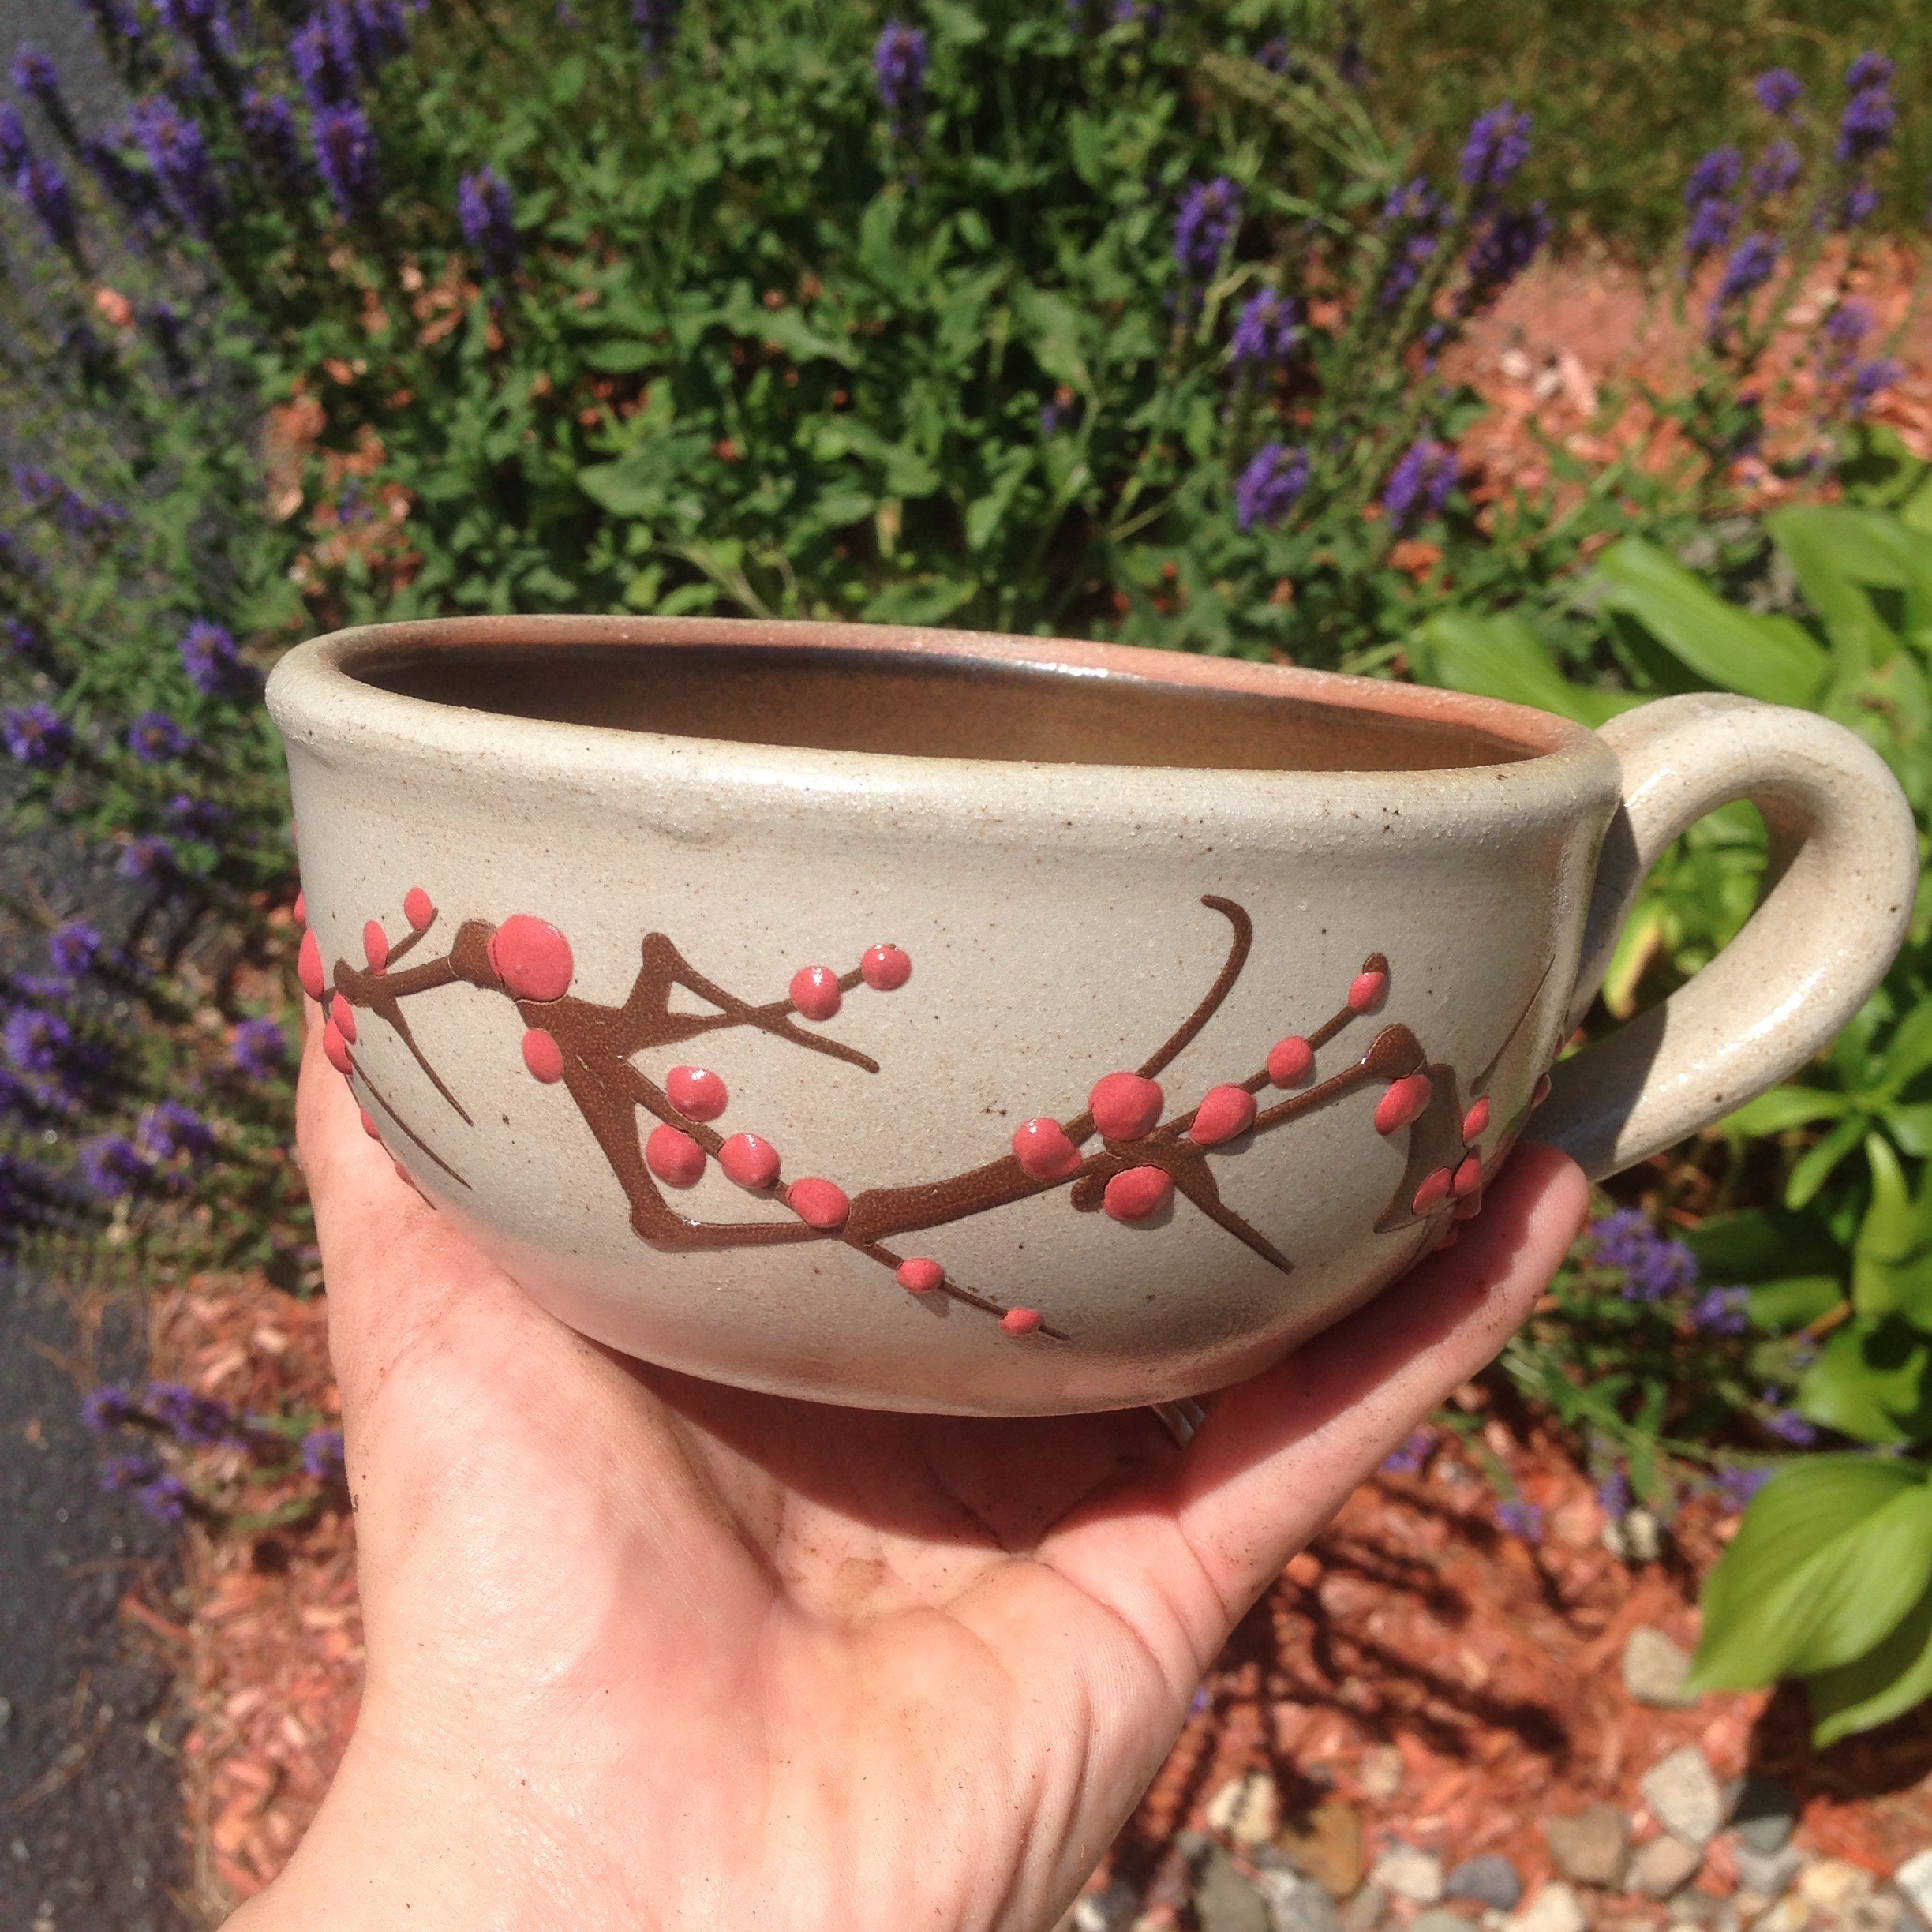 Repurpose a broken or chipped coffee mug into a kitchen herb garden